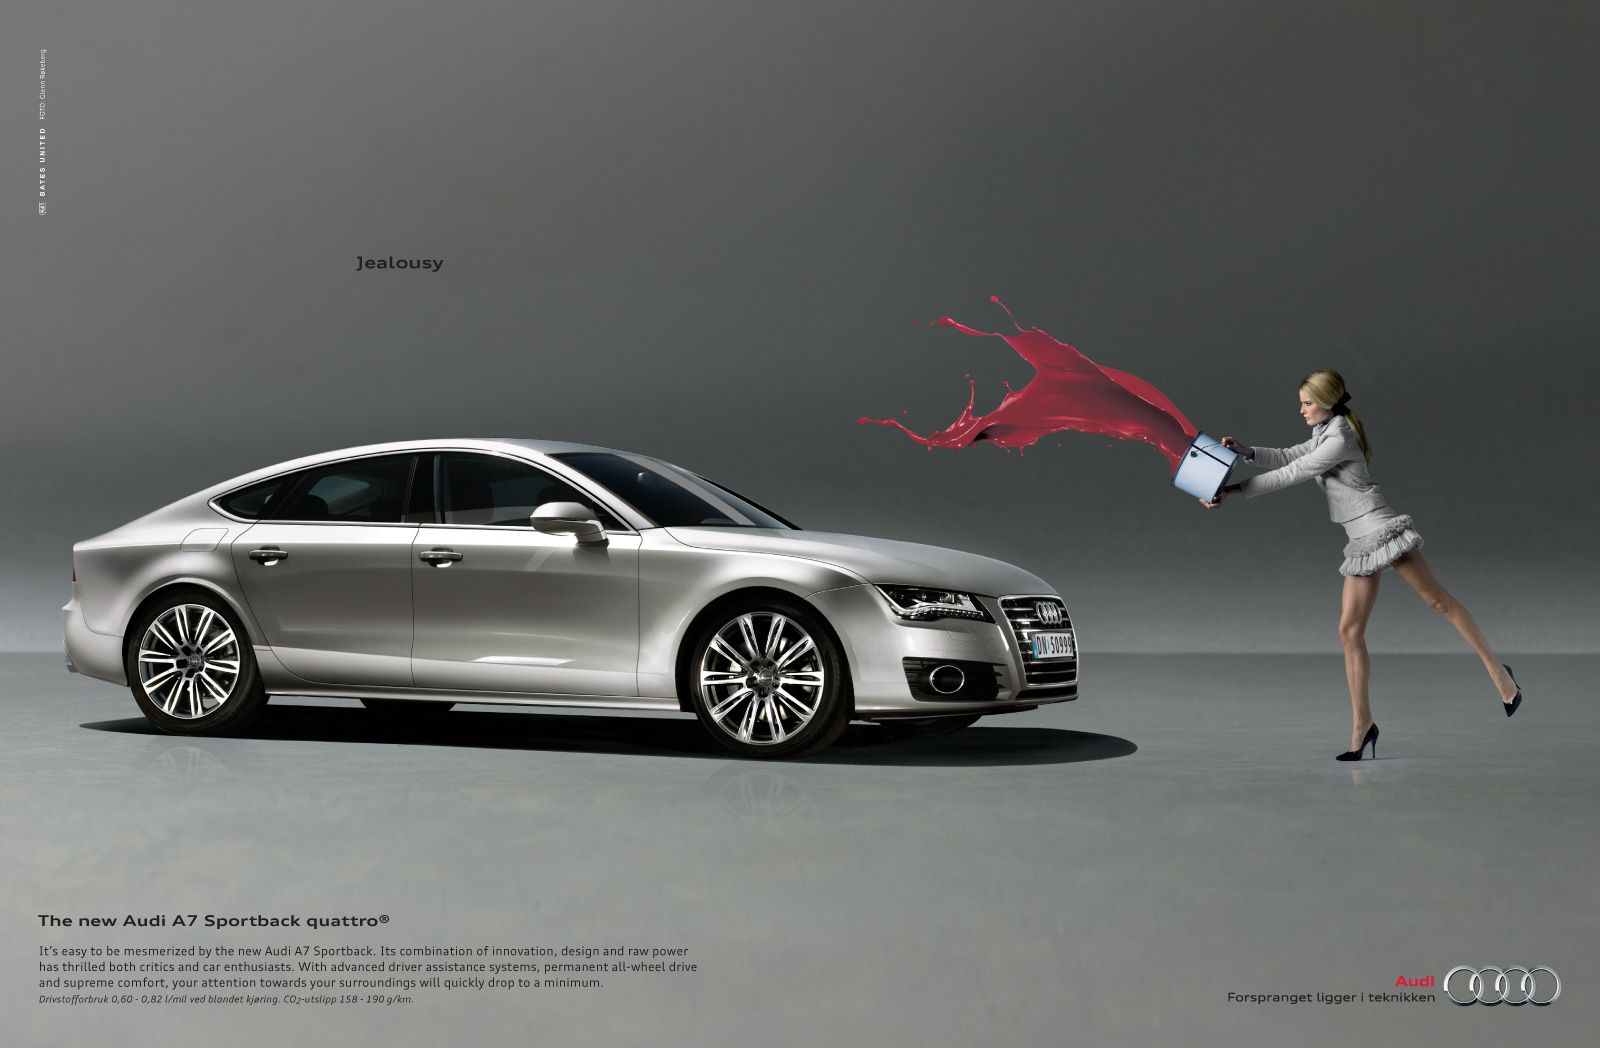 The new audi sportback quattro print advertisement